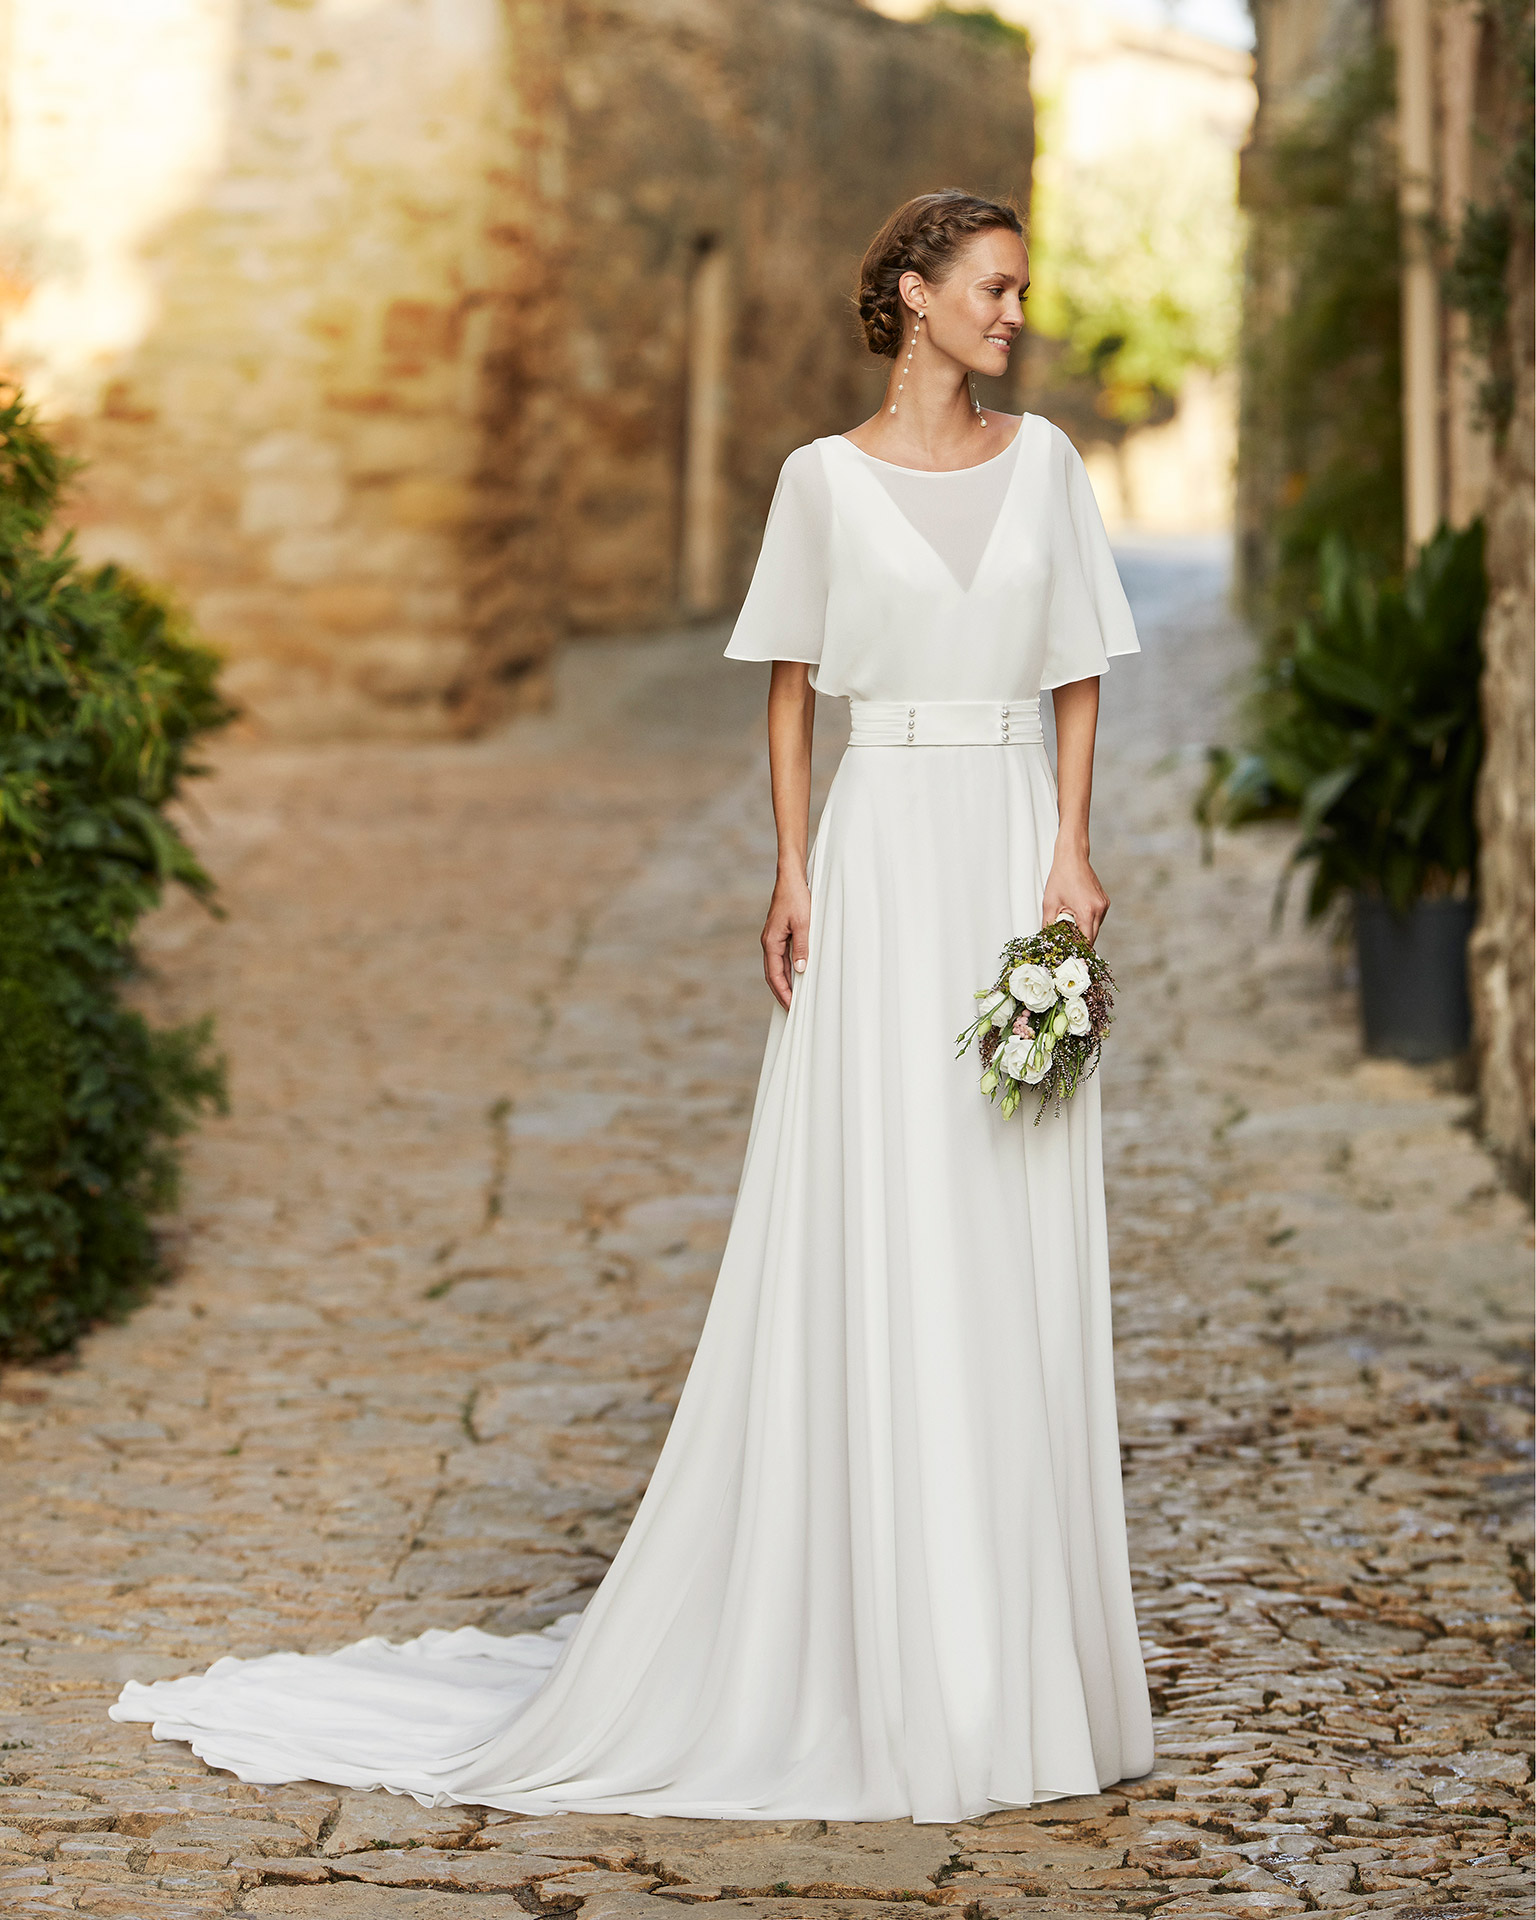 Boho-chic ballgown-style wedding dress and transparent yoke; with a plunging neckline and an open back with long draped crespon. Delicate Alma Novia model in crepe. 2022 ALMANOVIA Collection.